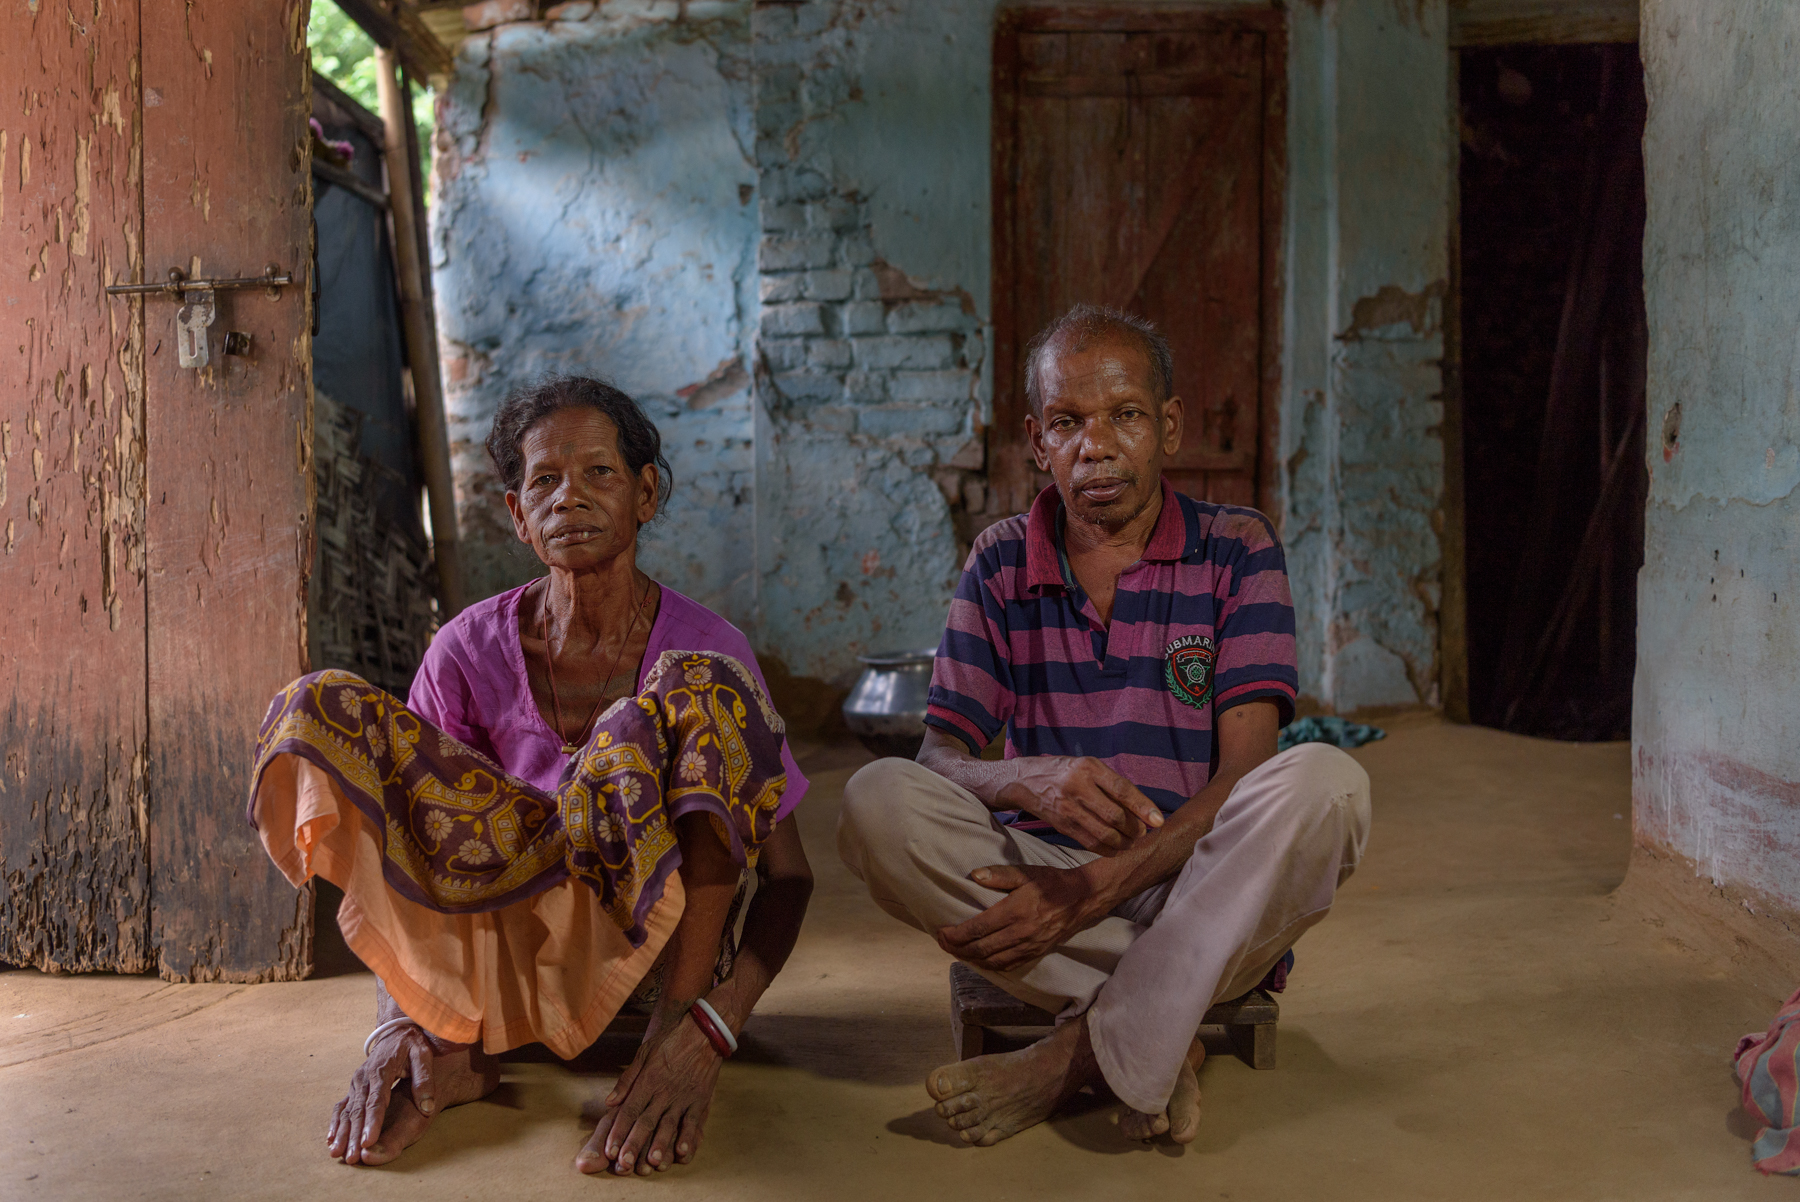 Sanchariya Oraon, 42, and Fhago Oraon, 45 at their home in Matelli. The couple's daughter Asha, 16, has been missing since six years. An acquaintance took Asha to the neighbouring state of Sikkim to work as a maid at a tourist lodge. Asha never returned home and there is no information about her whereabouts.